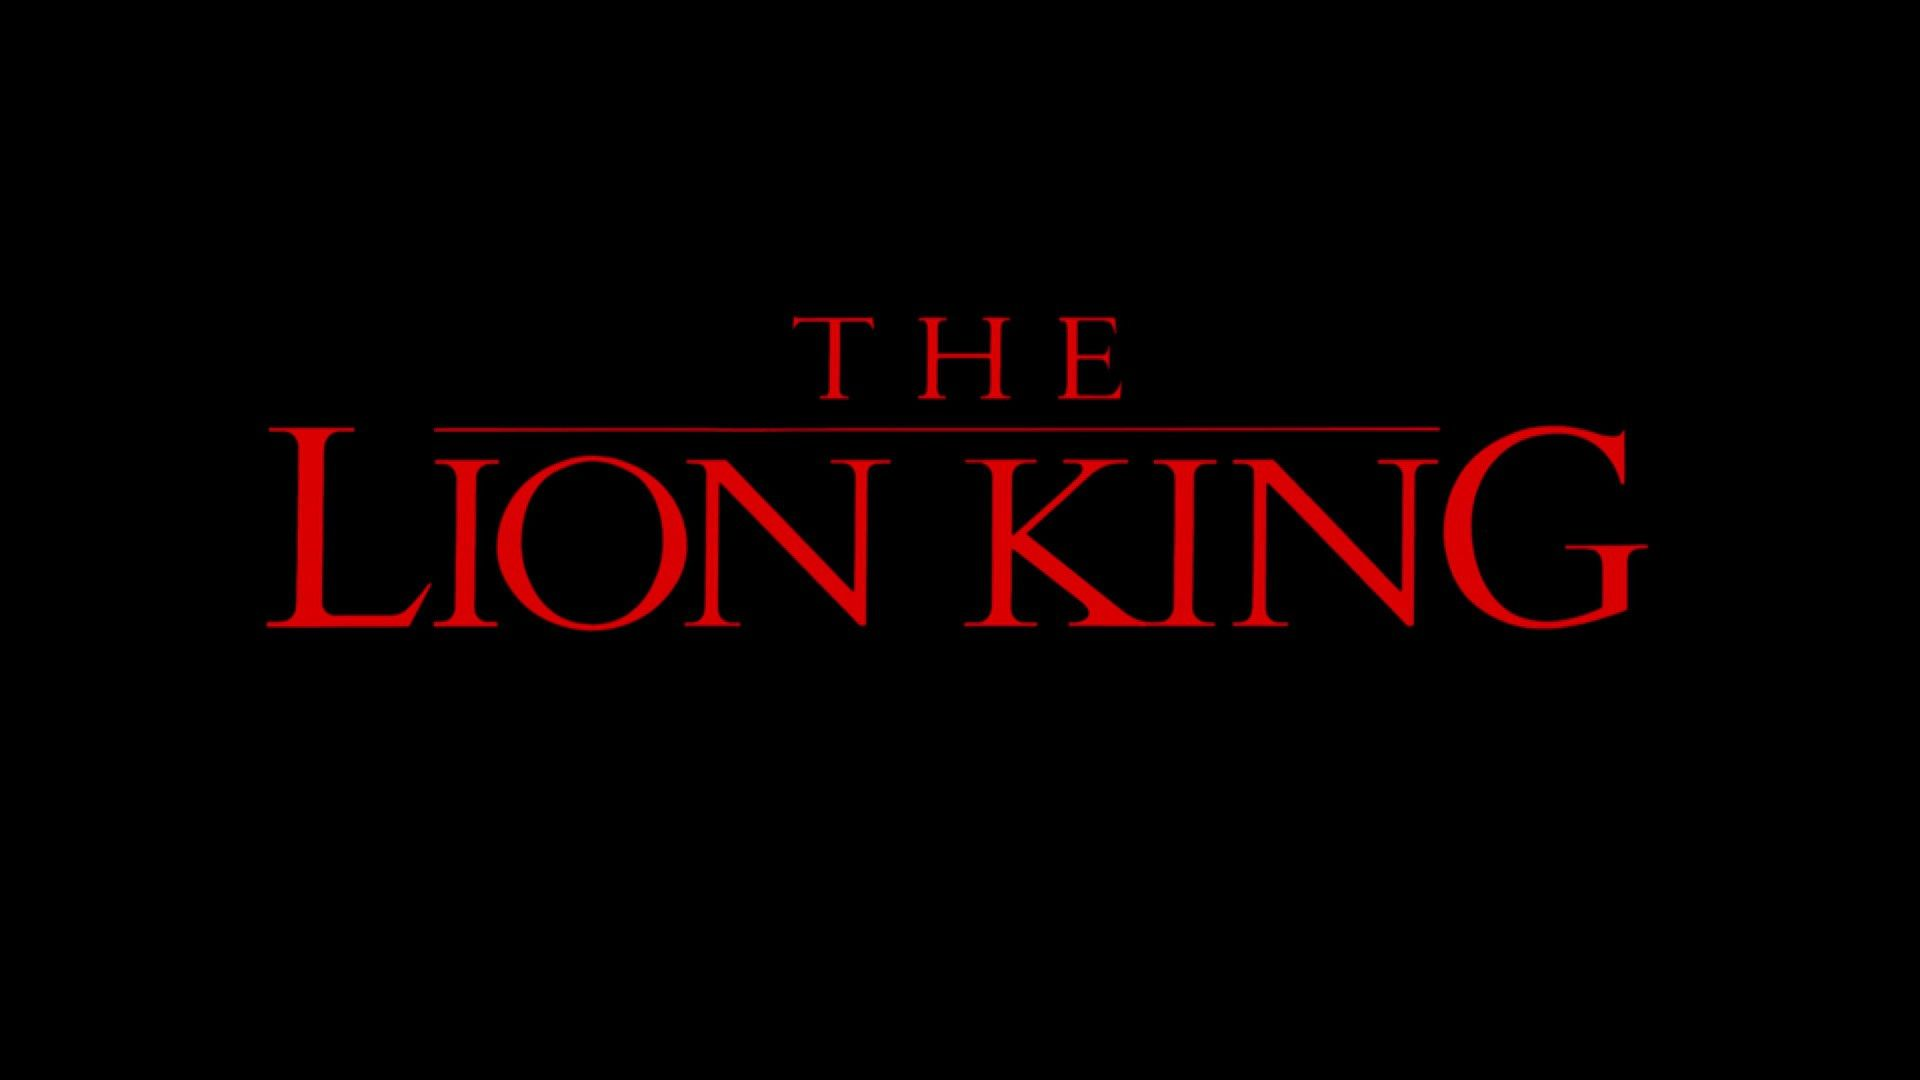 The Lion King 2019 Wallpapers Backgrounds Read Games Review